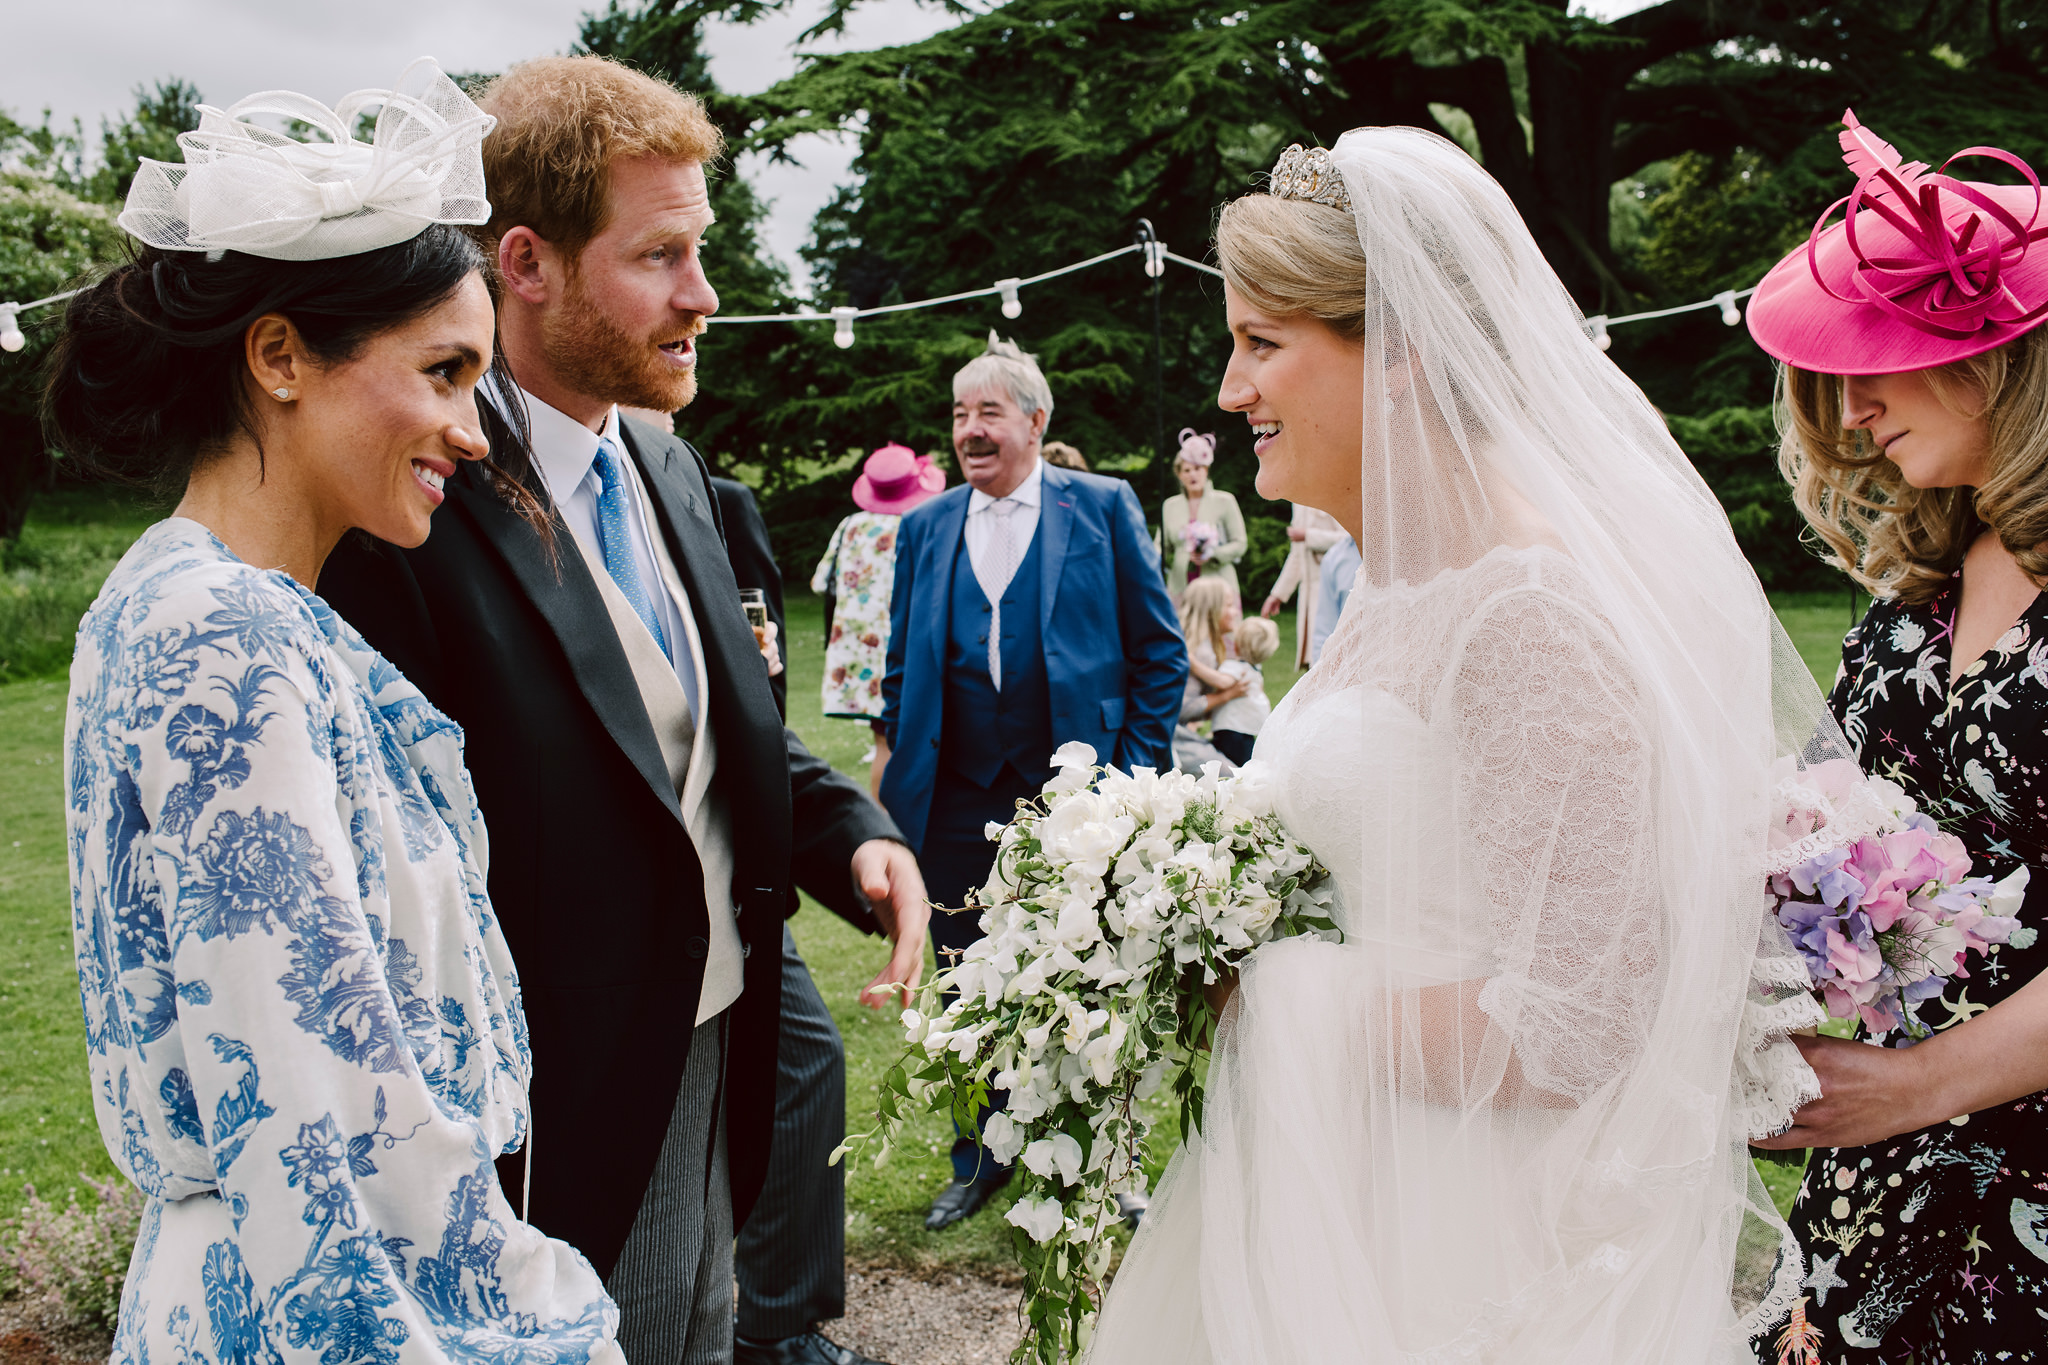 Prince Harry and Duchess of Sussex Meghan Markle greet bride - photo by Rich Howman